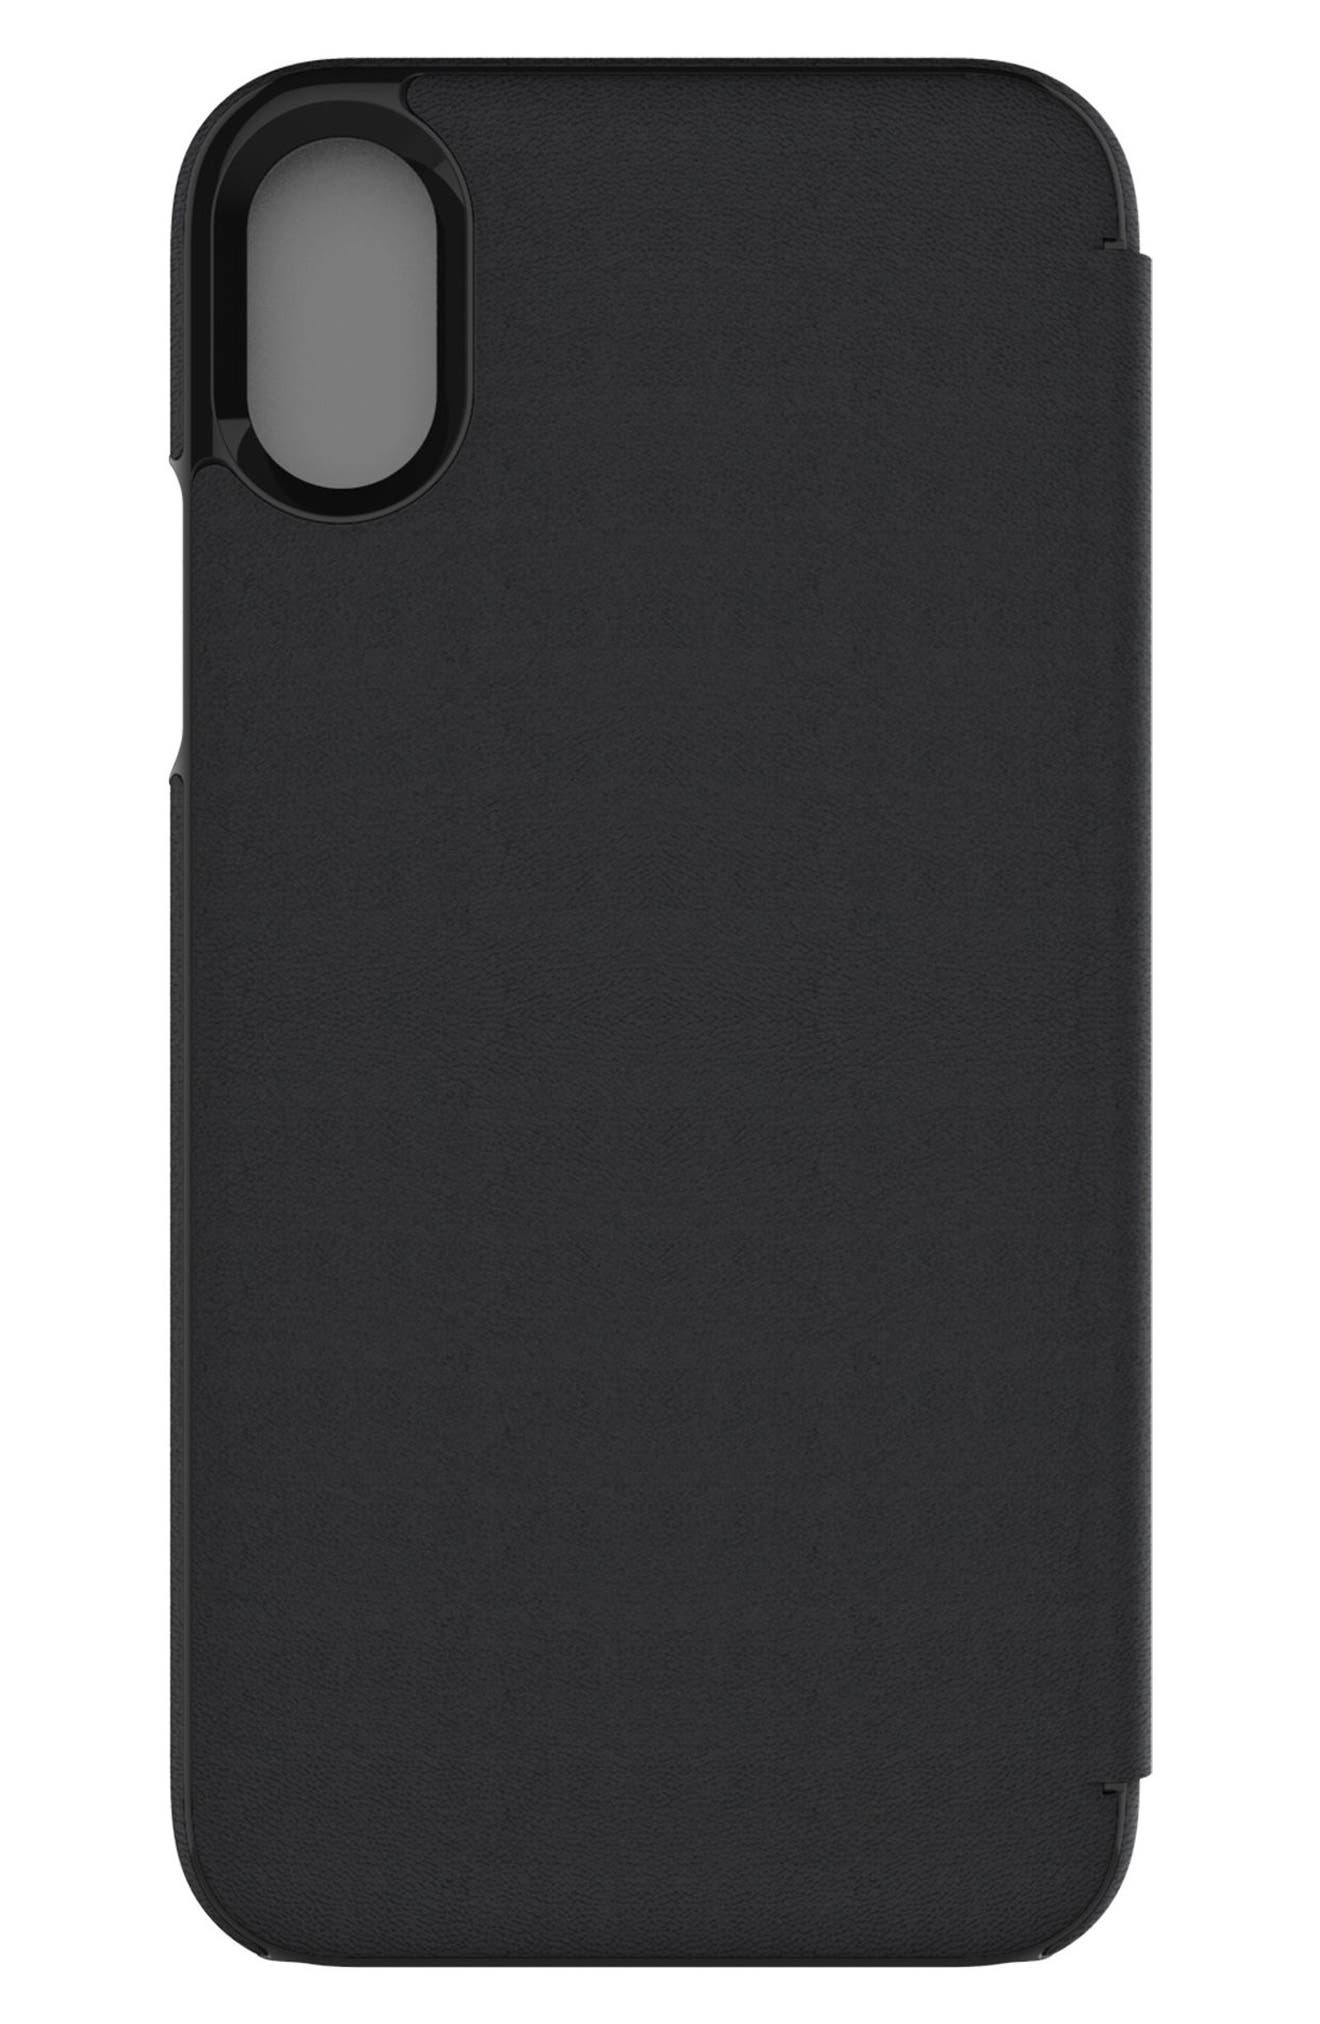 Privacy Folio iPhone X & Xs Case,                             Alternate thumbnail 3, color,                             003